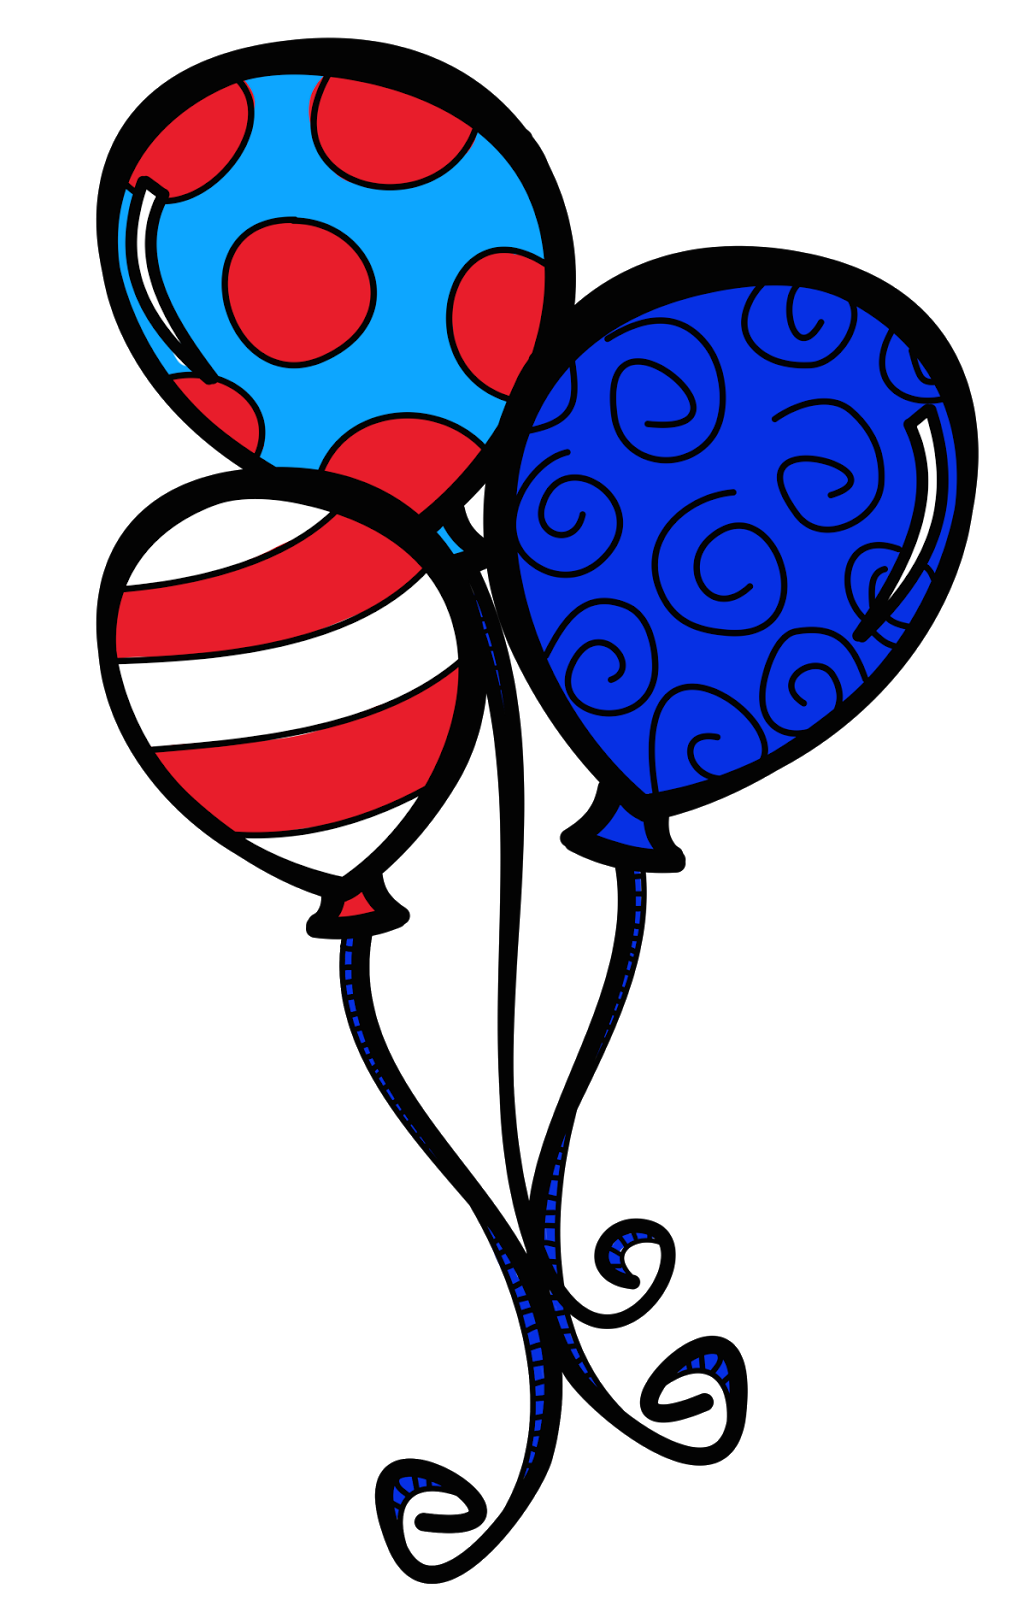 Cat in the hat tie clipart graphic freeuse Dr Seuss Balloon Clipart | ryders 1st party | Pinterest graphic freeuse